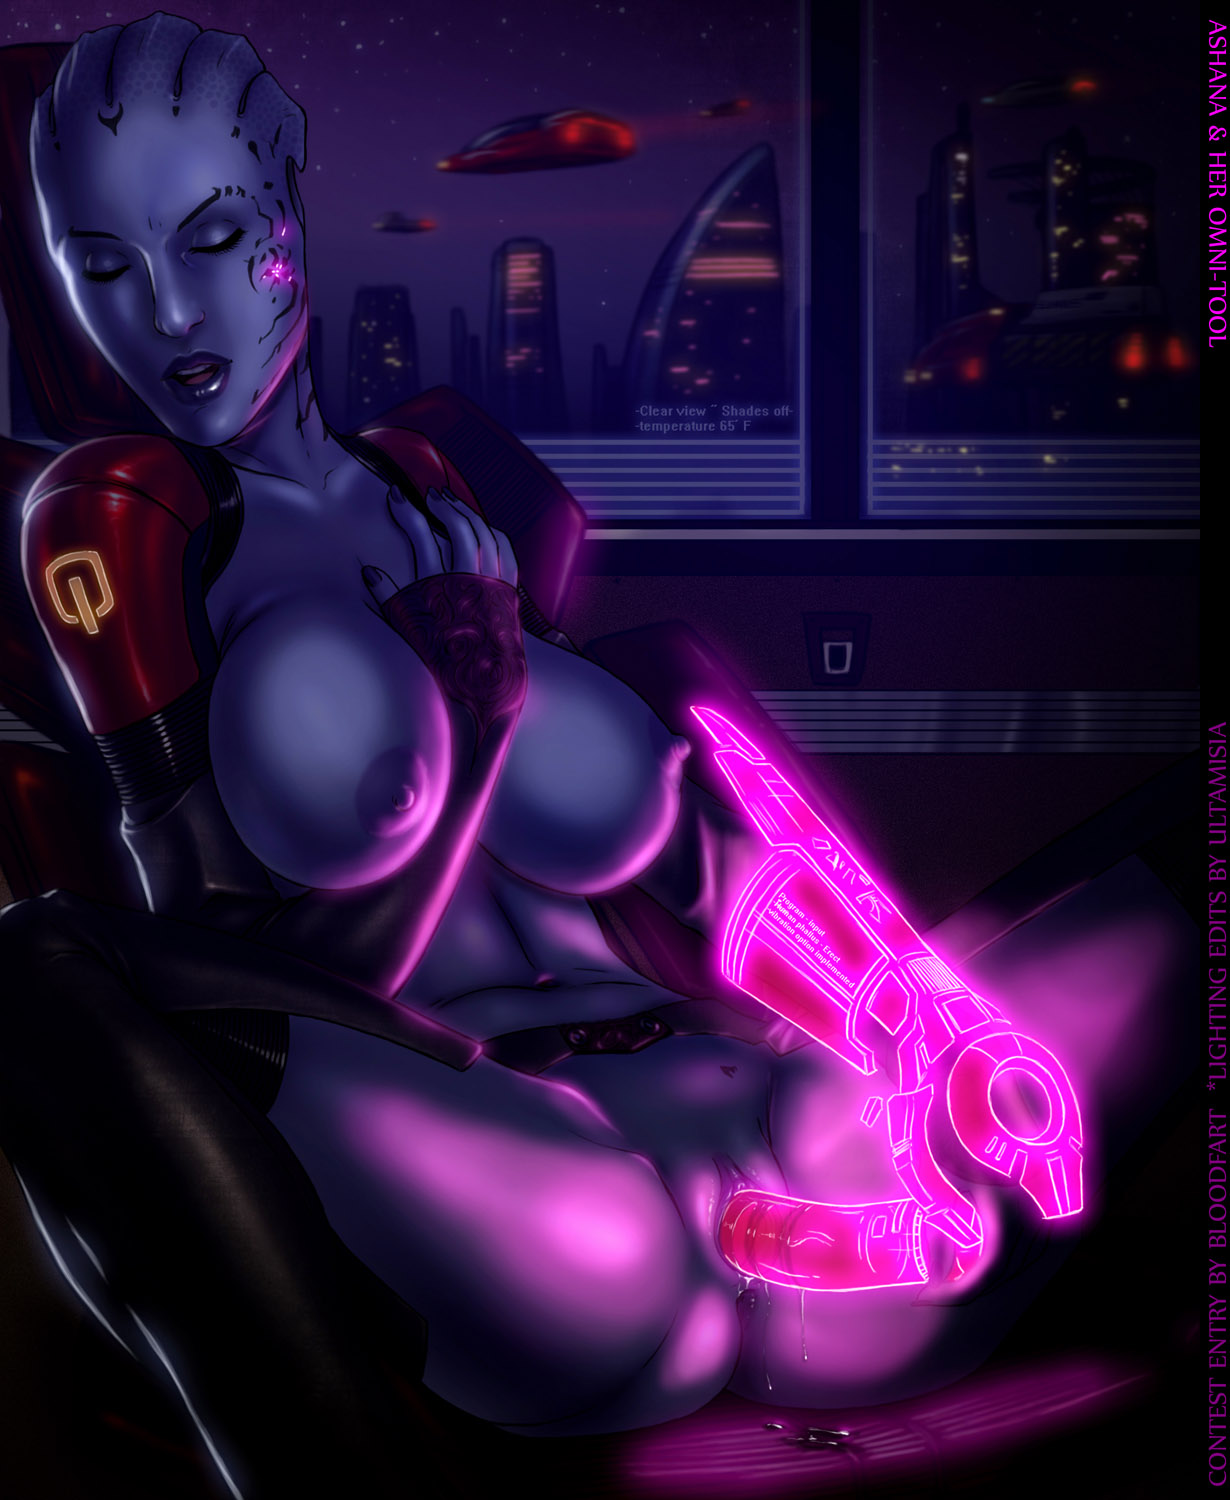 Mass effect cg porn pictures hentai videos